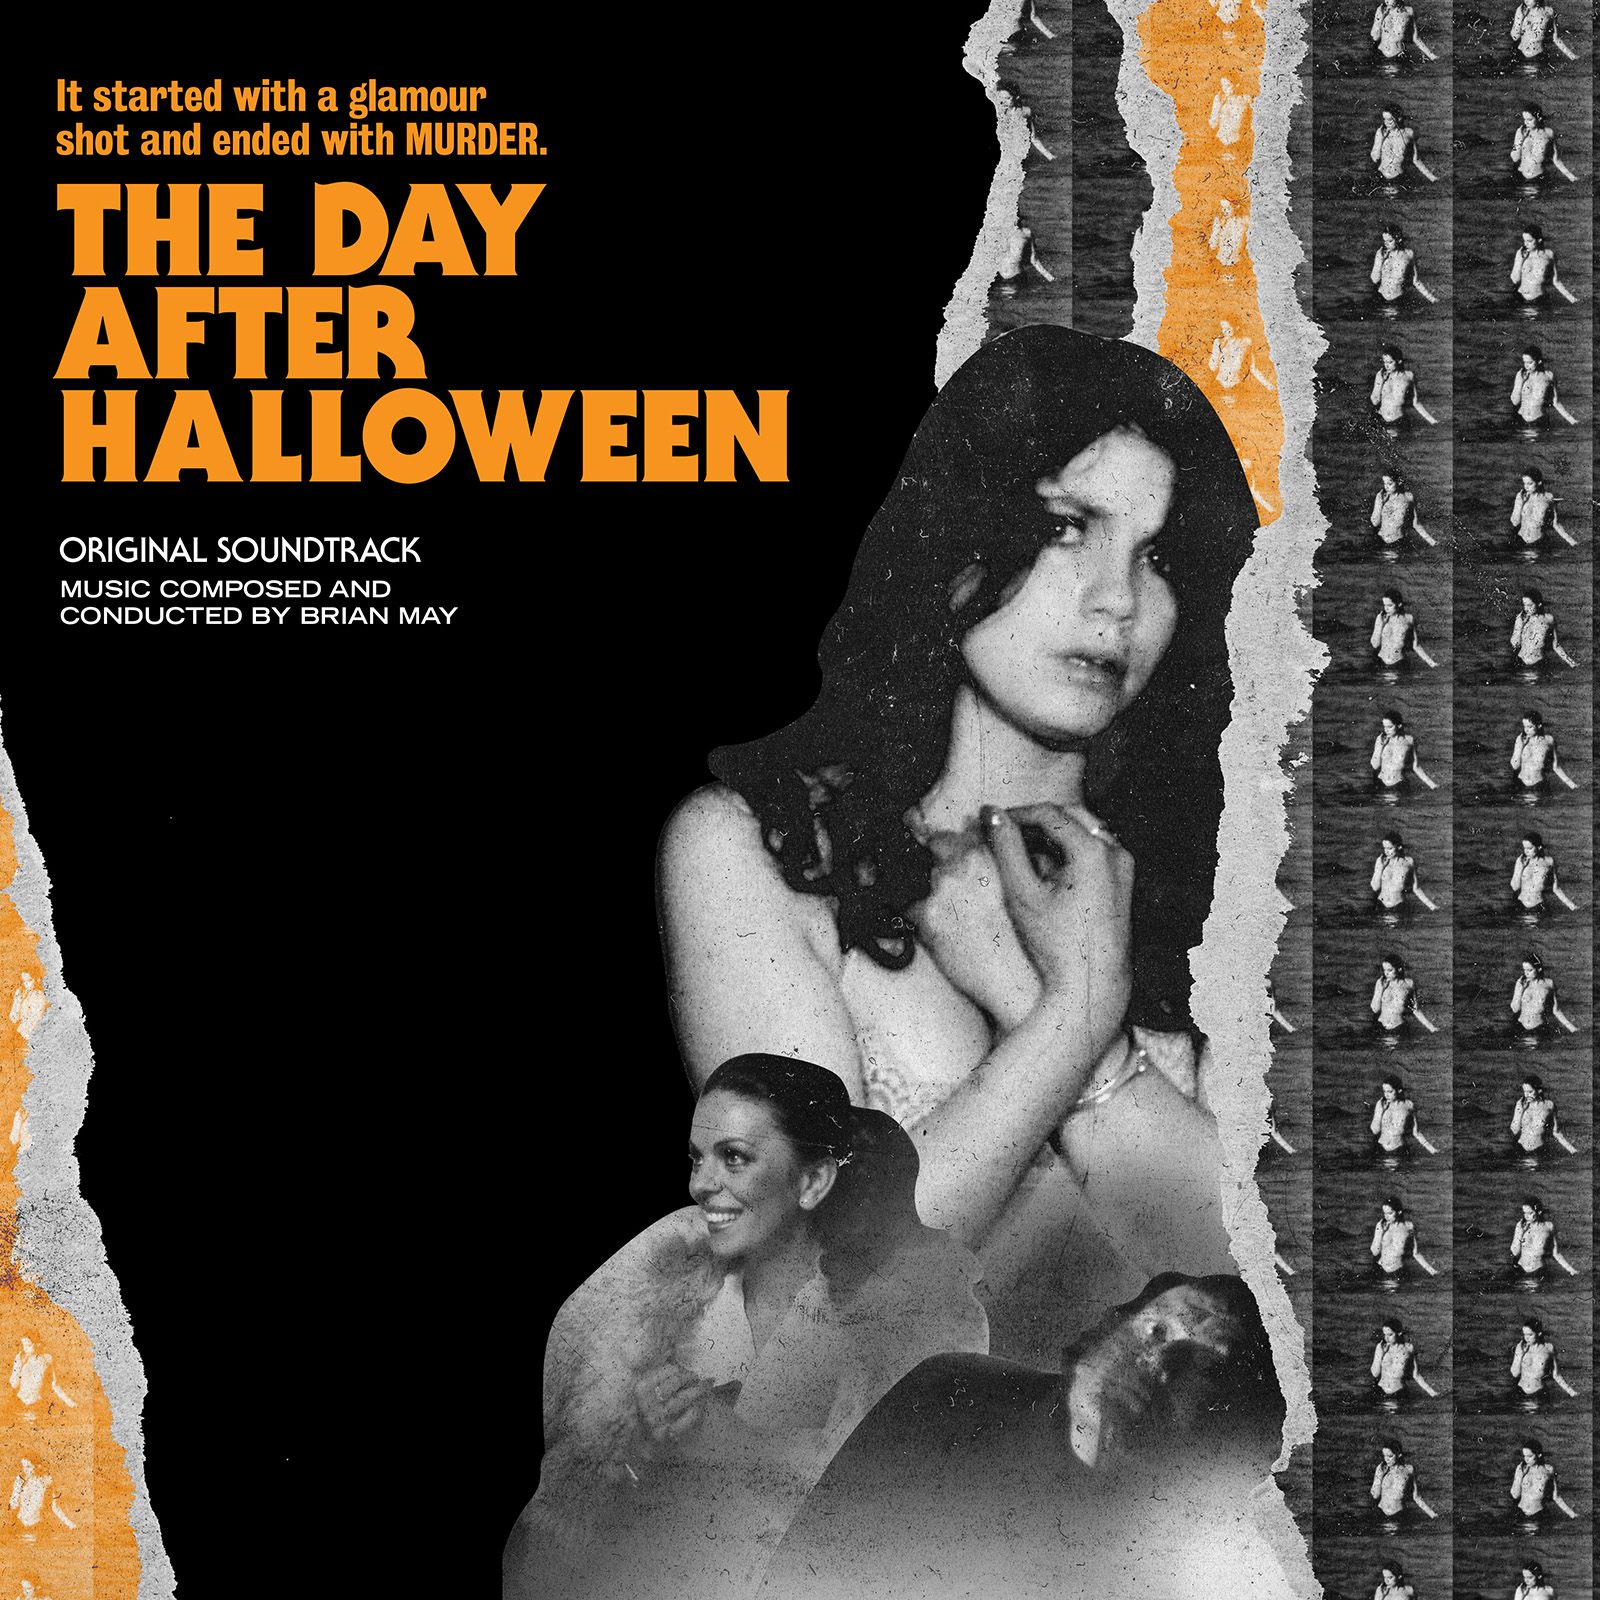 Brian May - The Day After Halloween (1980 Original Soundtrack)